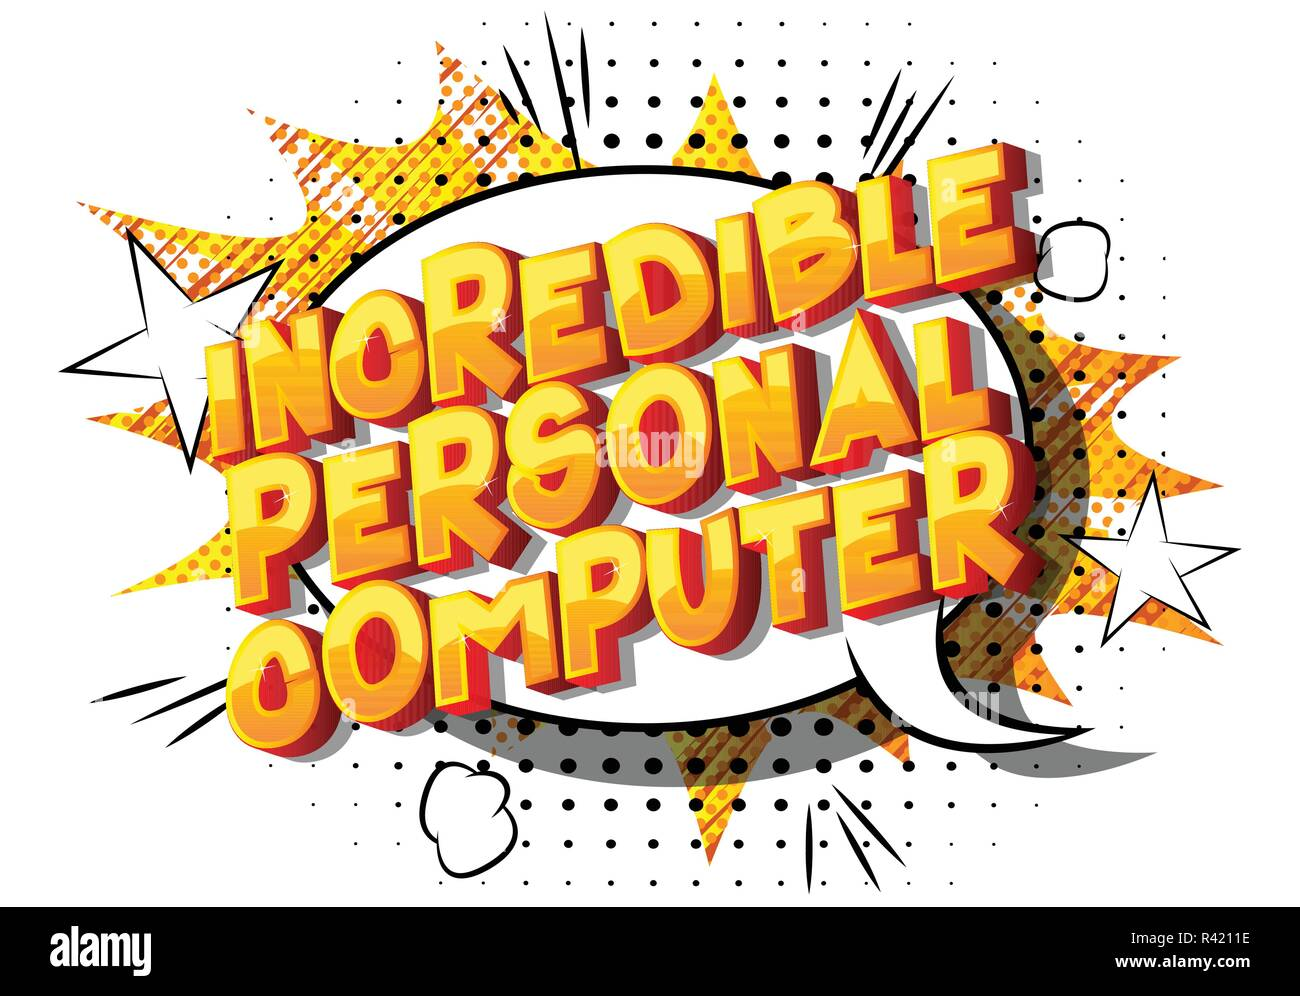 Incredible Personal Computer - Vector illustrated comic book style phrase on abstract background. - Stock Image